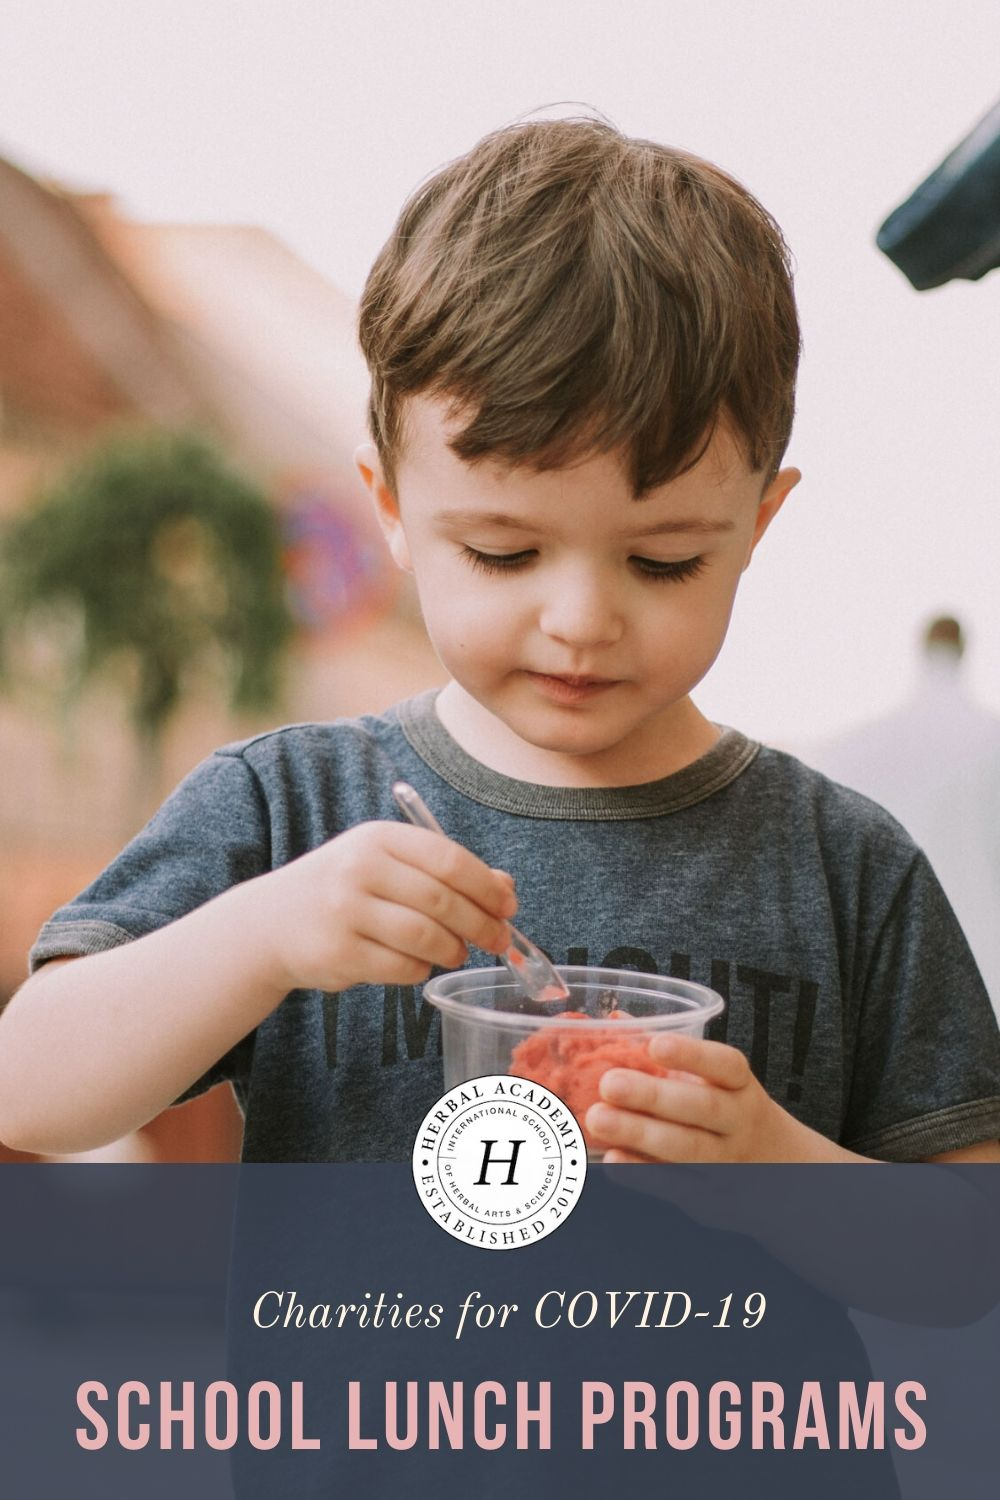 COVID-19 School Lunch Programs: Keeping Children Fed | Herbal Aademy | As a result of COVID-19 school closures, our hearts particularly ache for children who are unable to access free school lunch programs.